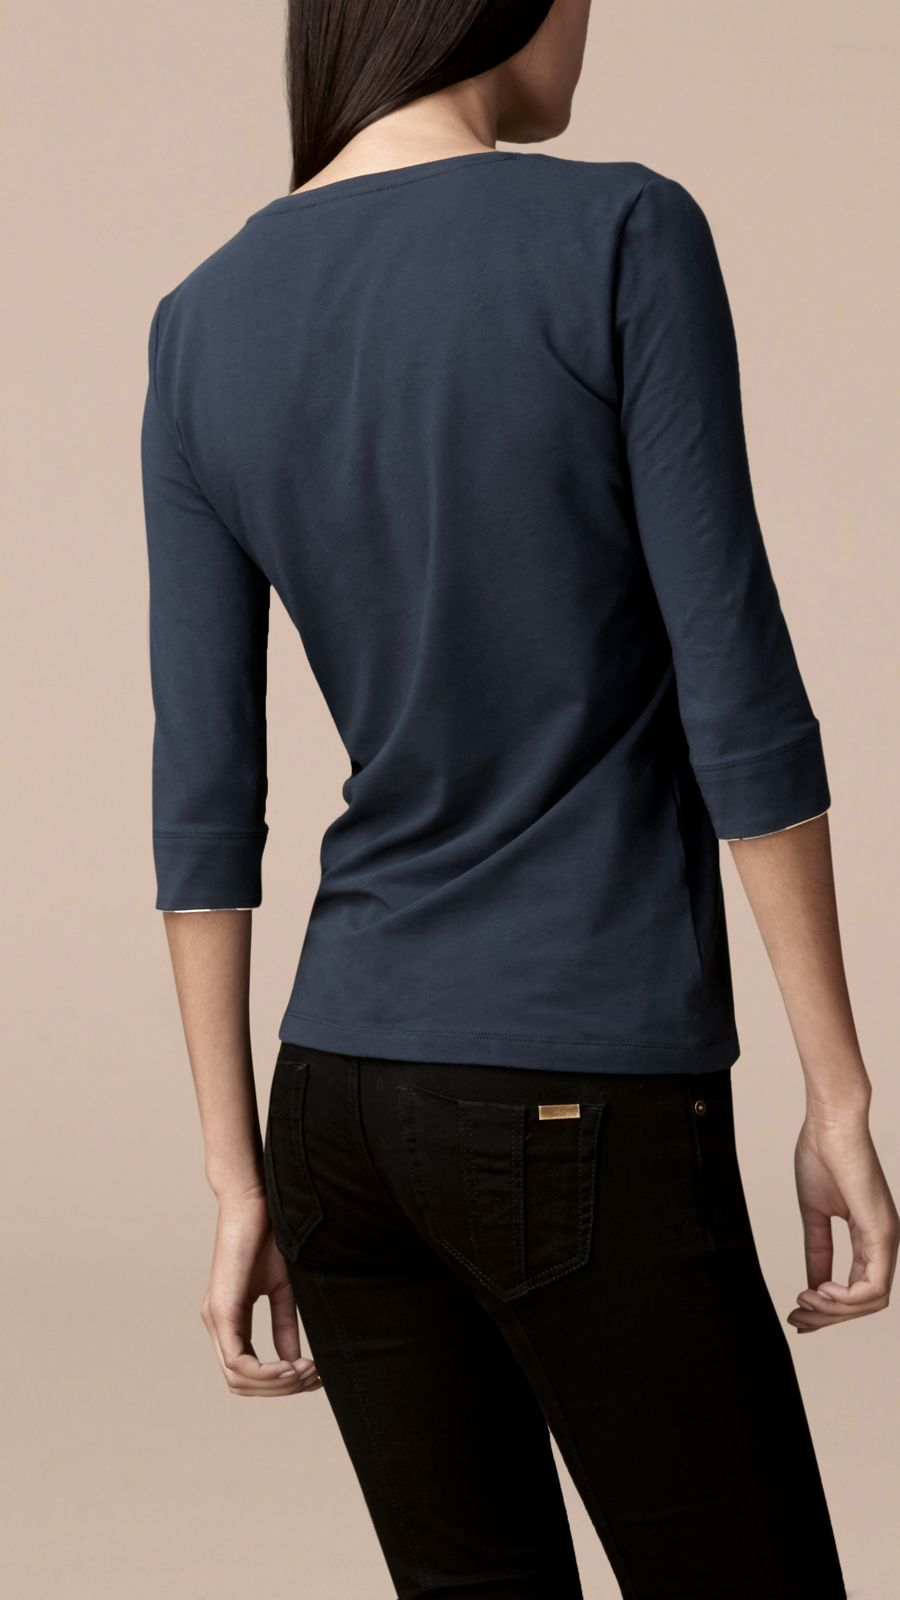 Navy Check Cuff Stretch-Cotton Top Navy - Image 4